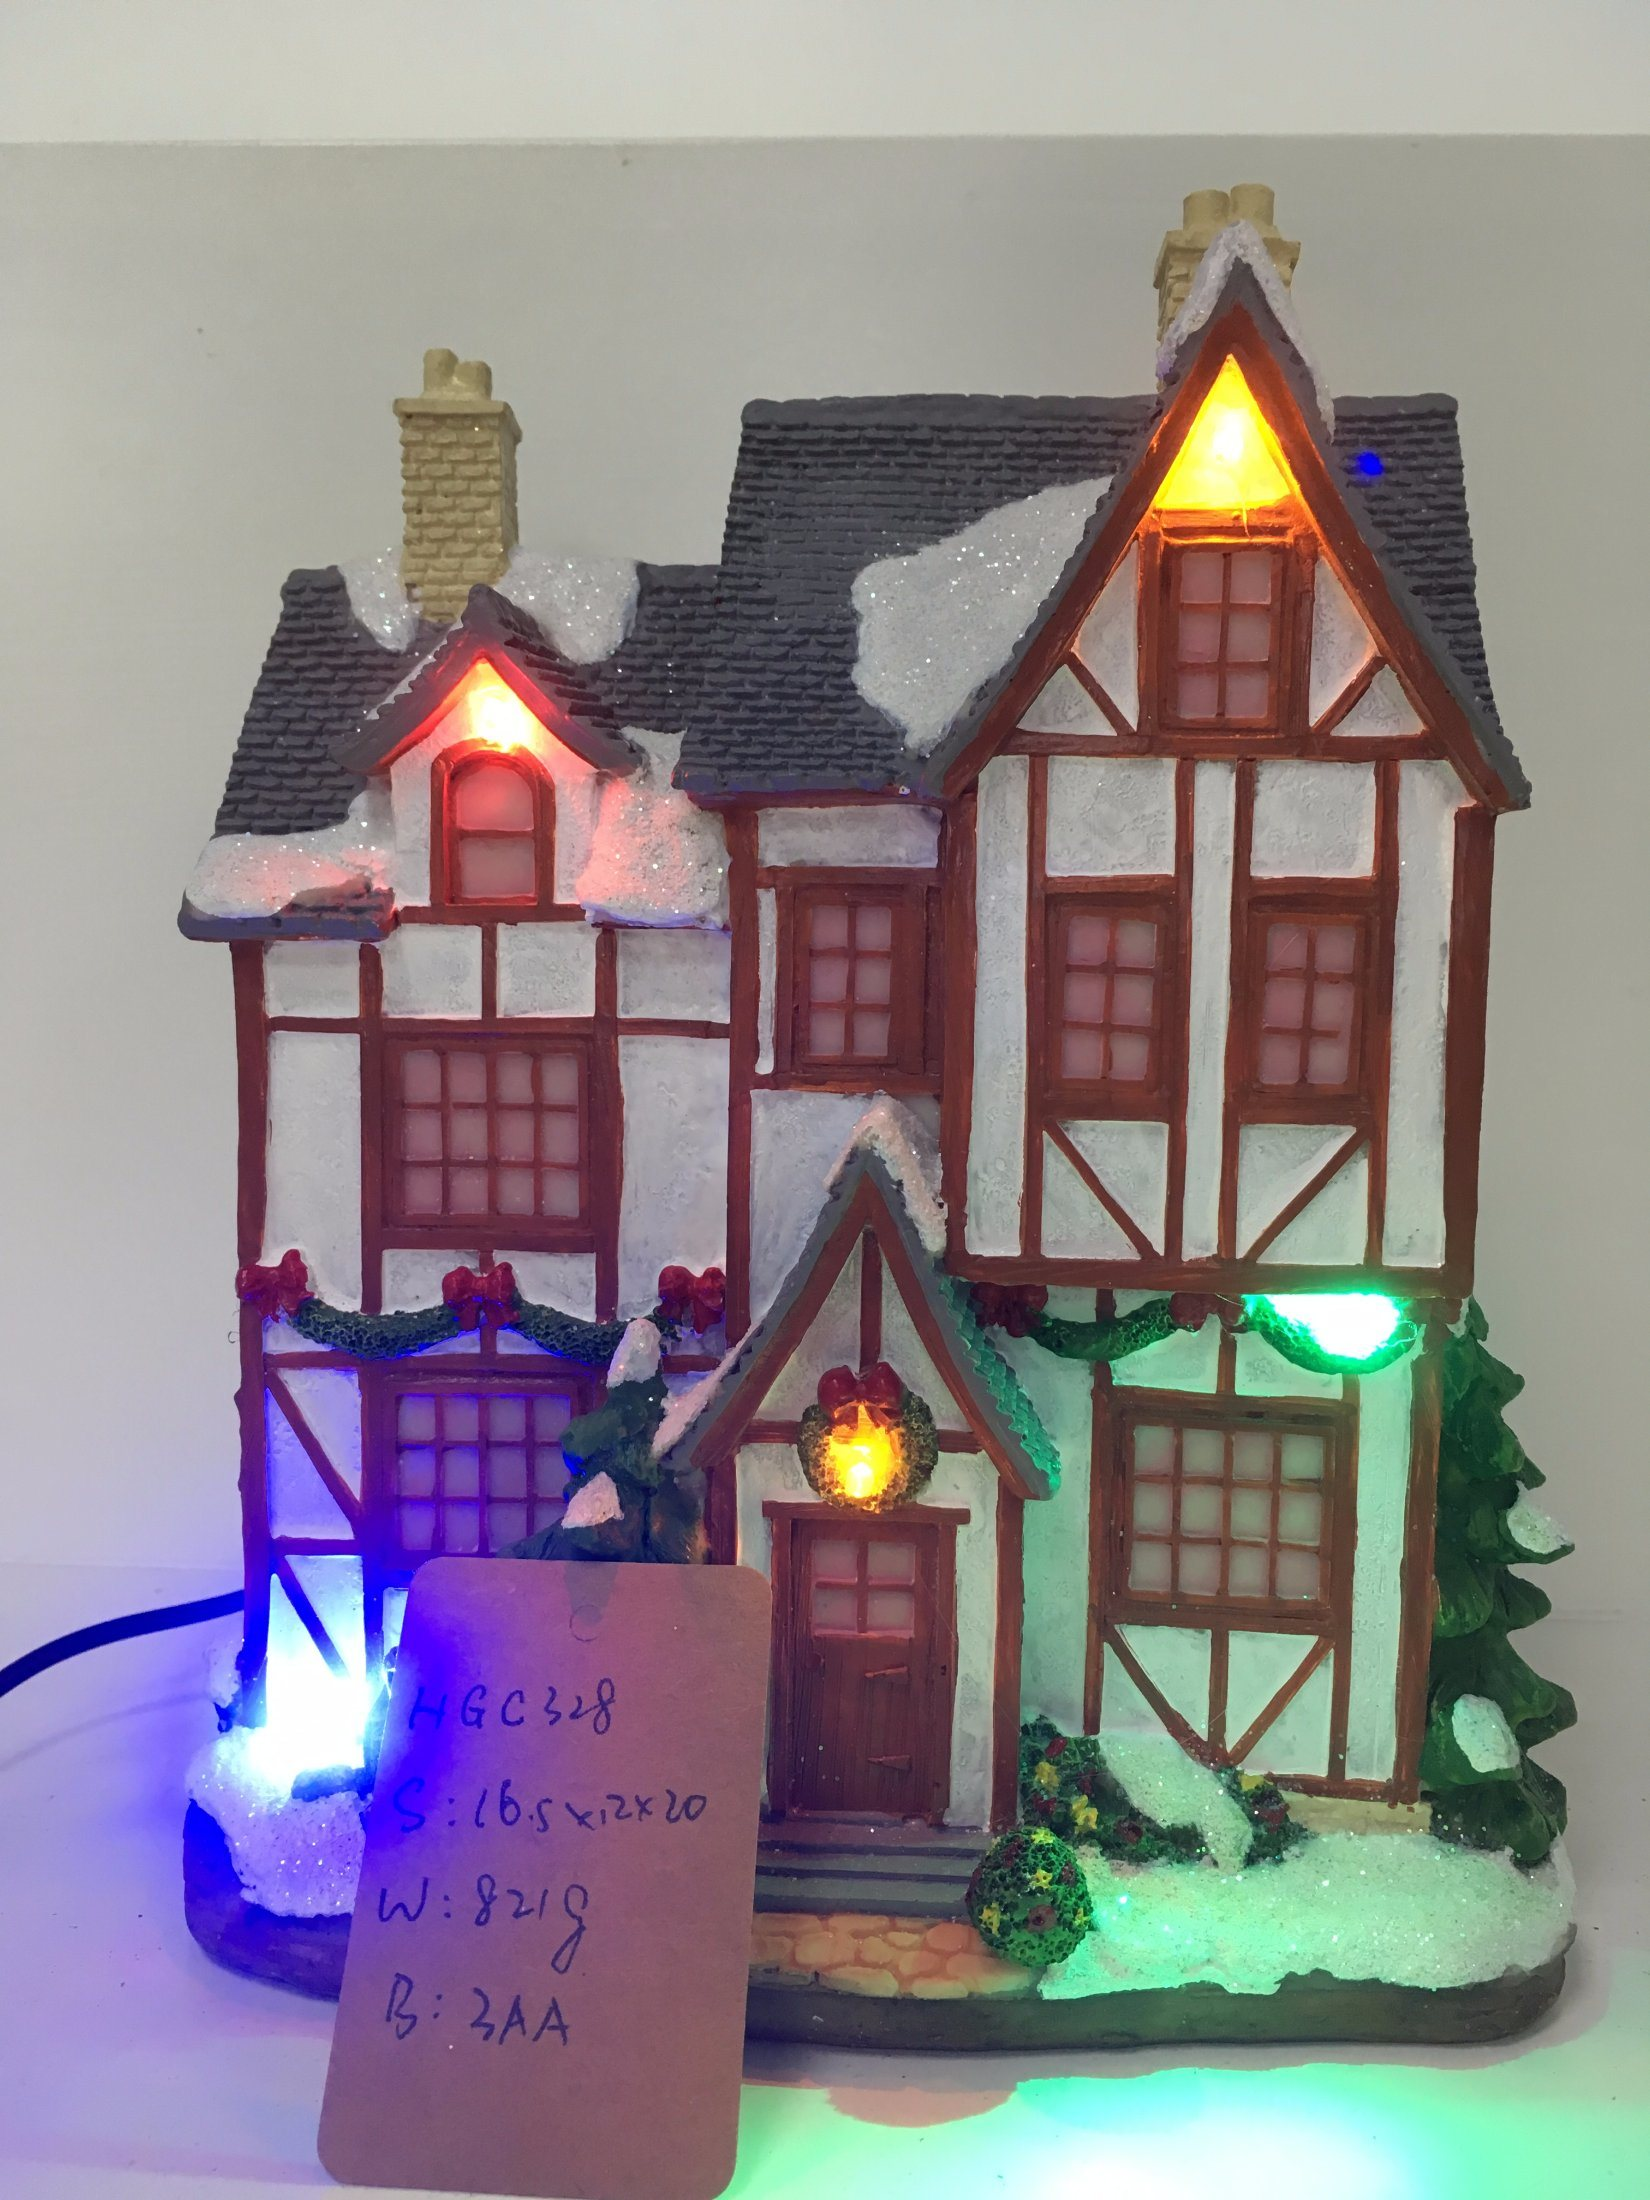 Christmas Village Houses.Hot Item Factory Price Lighted Resin Christmas Village Houses With Music